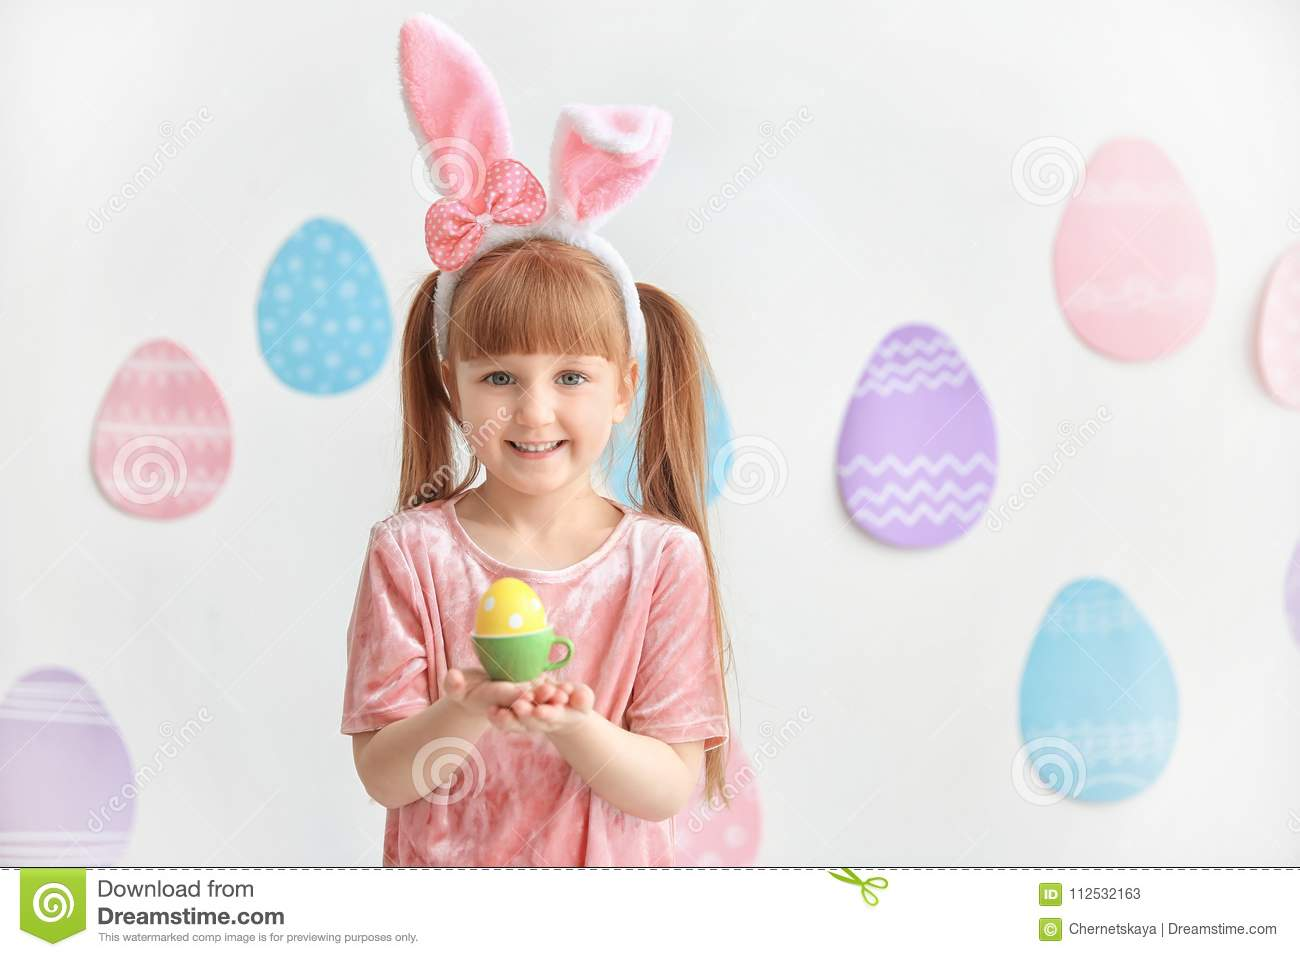 Cute little girl with bunny ears holding bright Easter egg